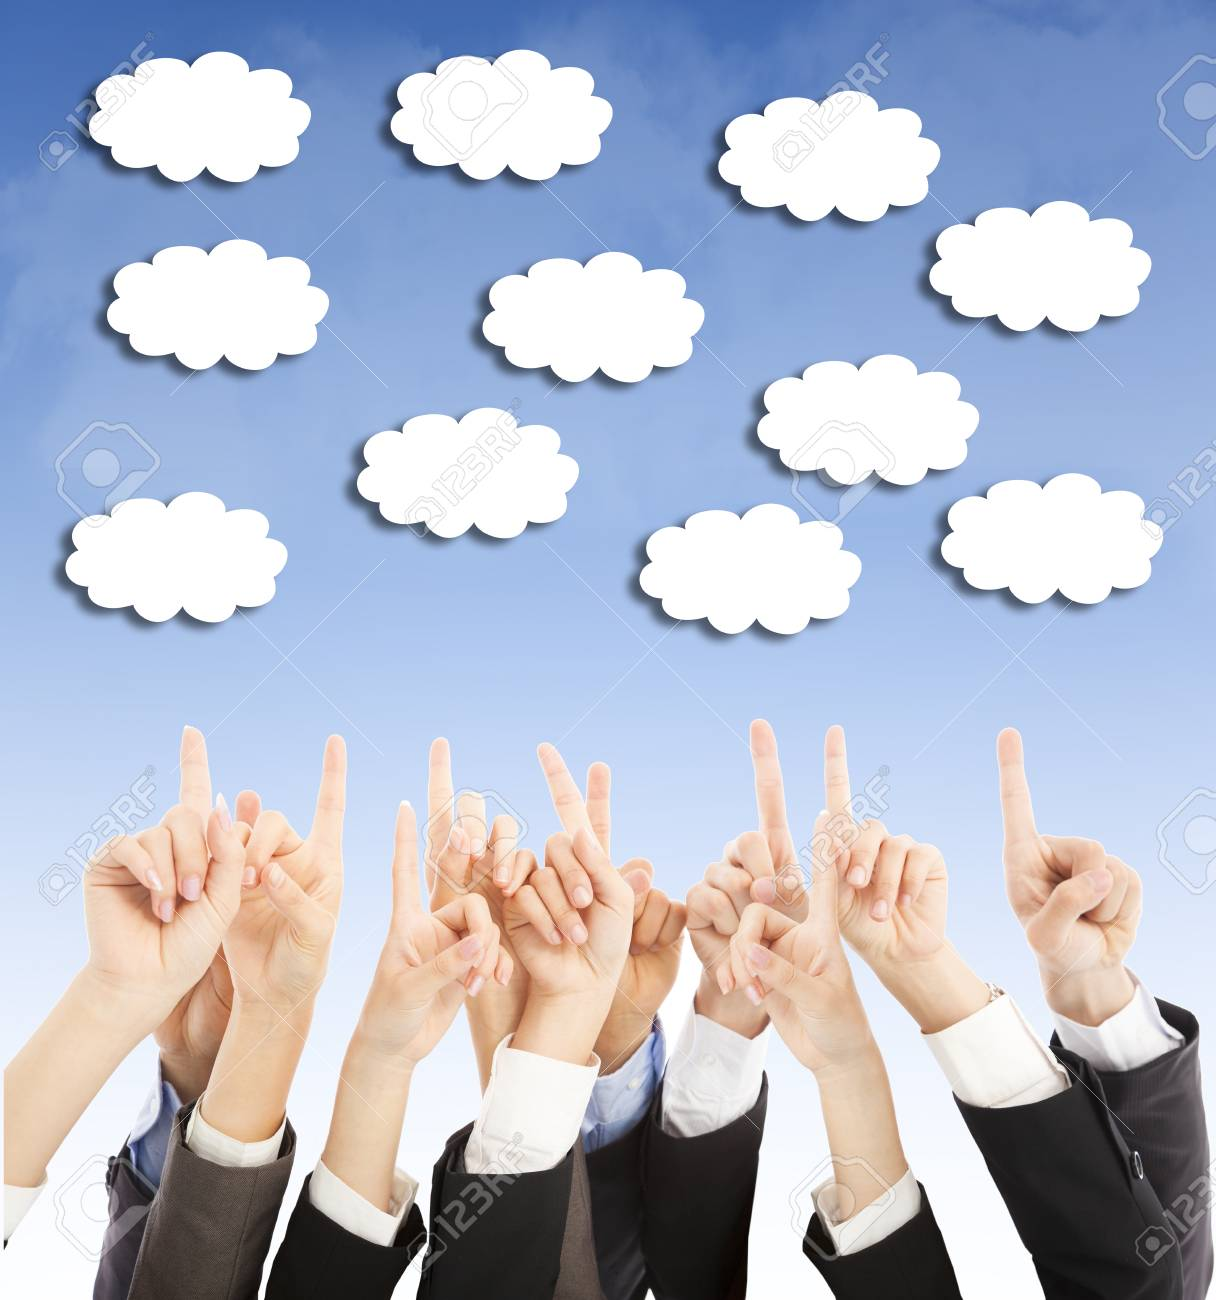 group of business people hands point upward cloud Stock Photo - 29969094